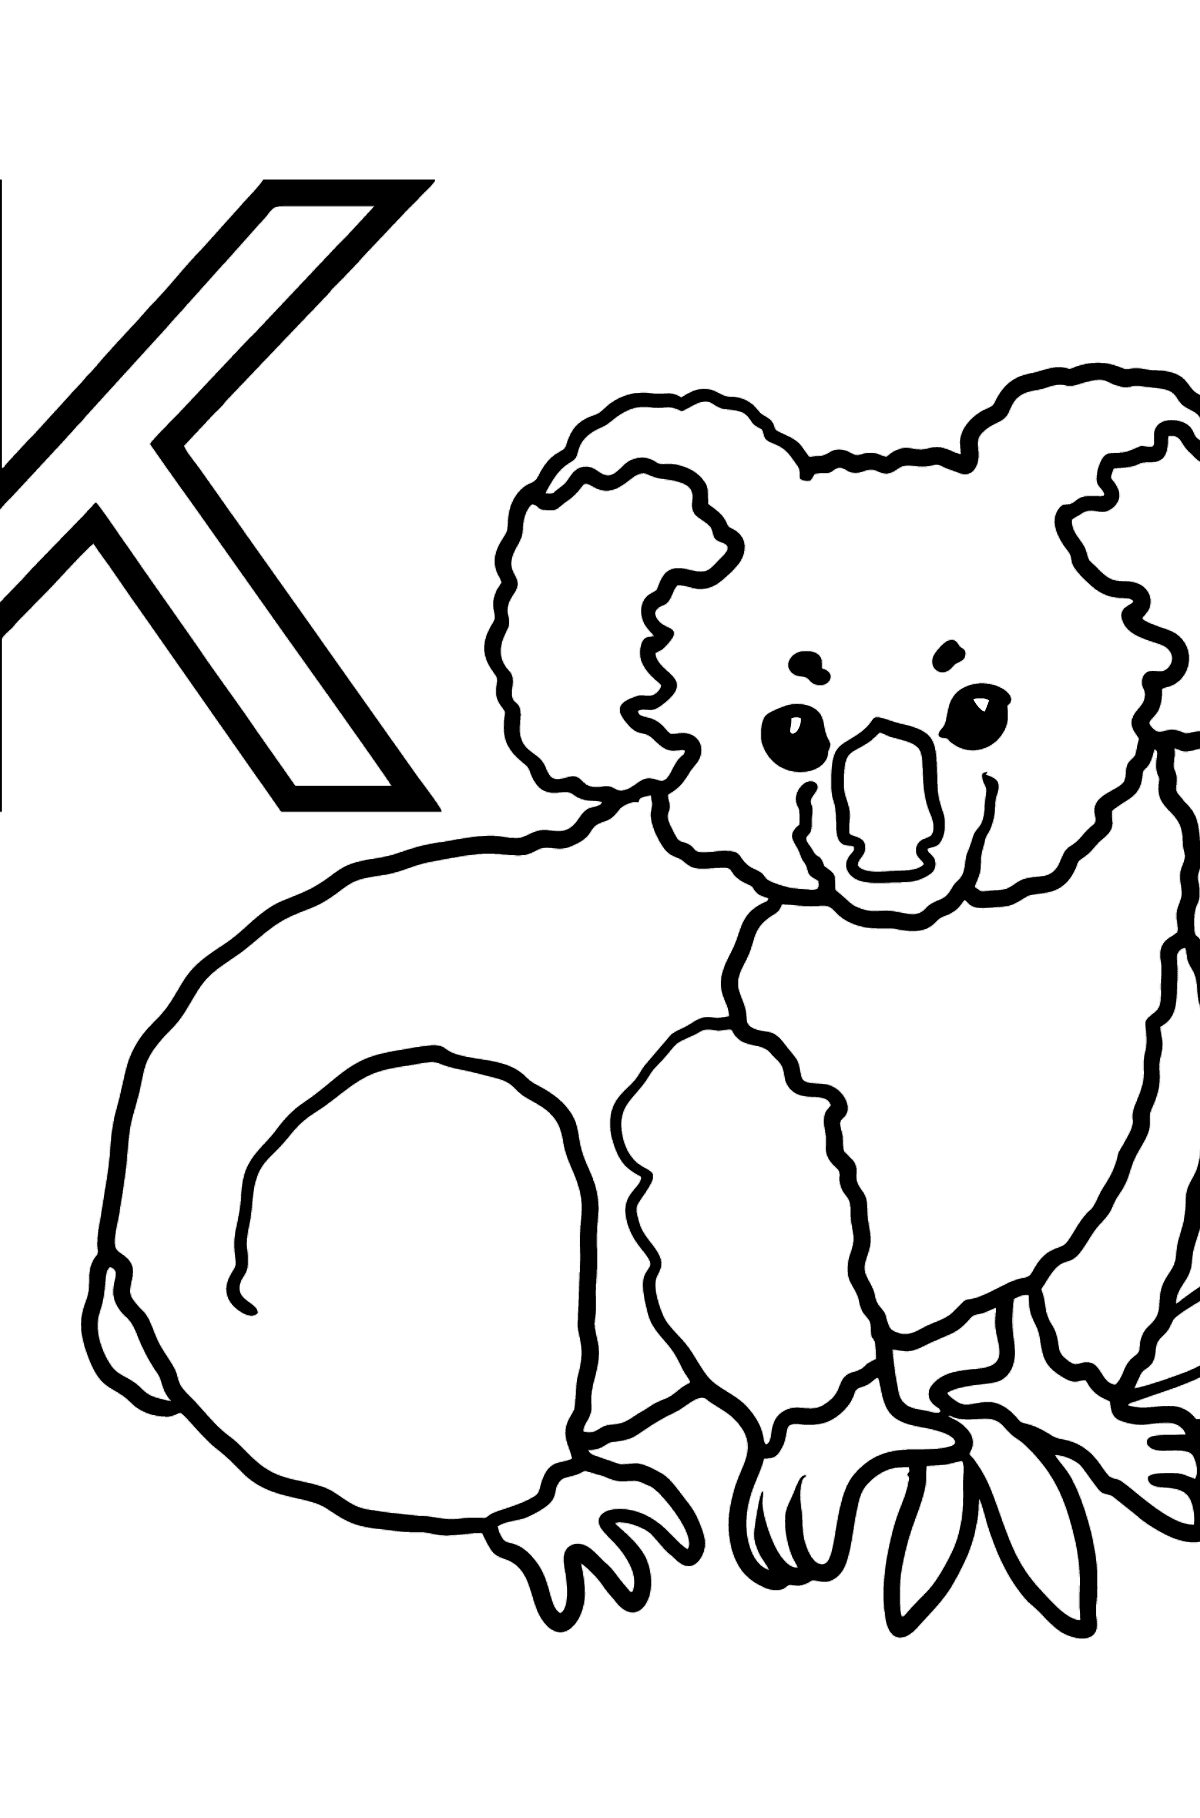 Spanish Letter K coloring pages - KOALA - Coloring Pages for Kids